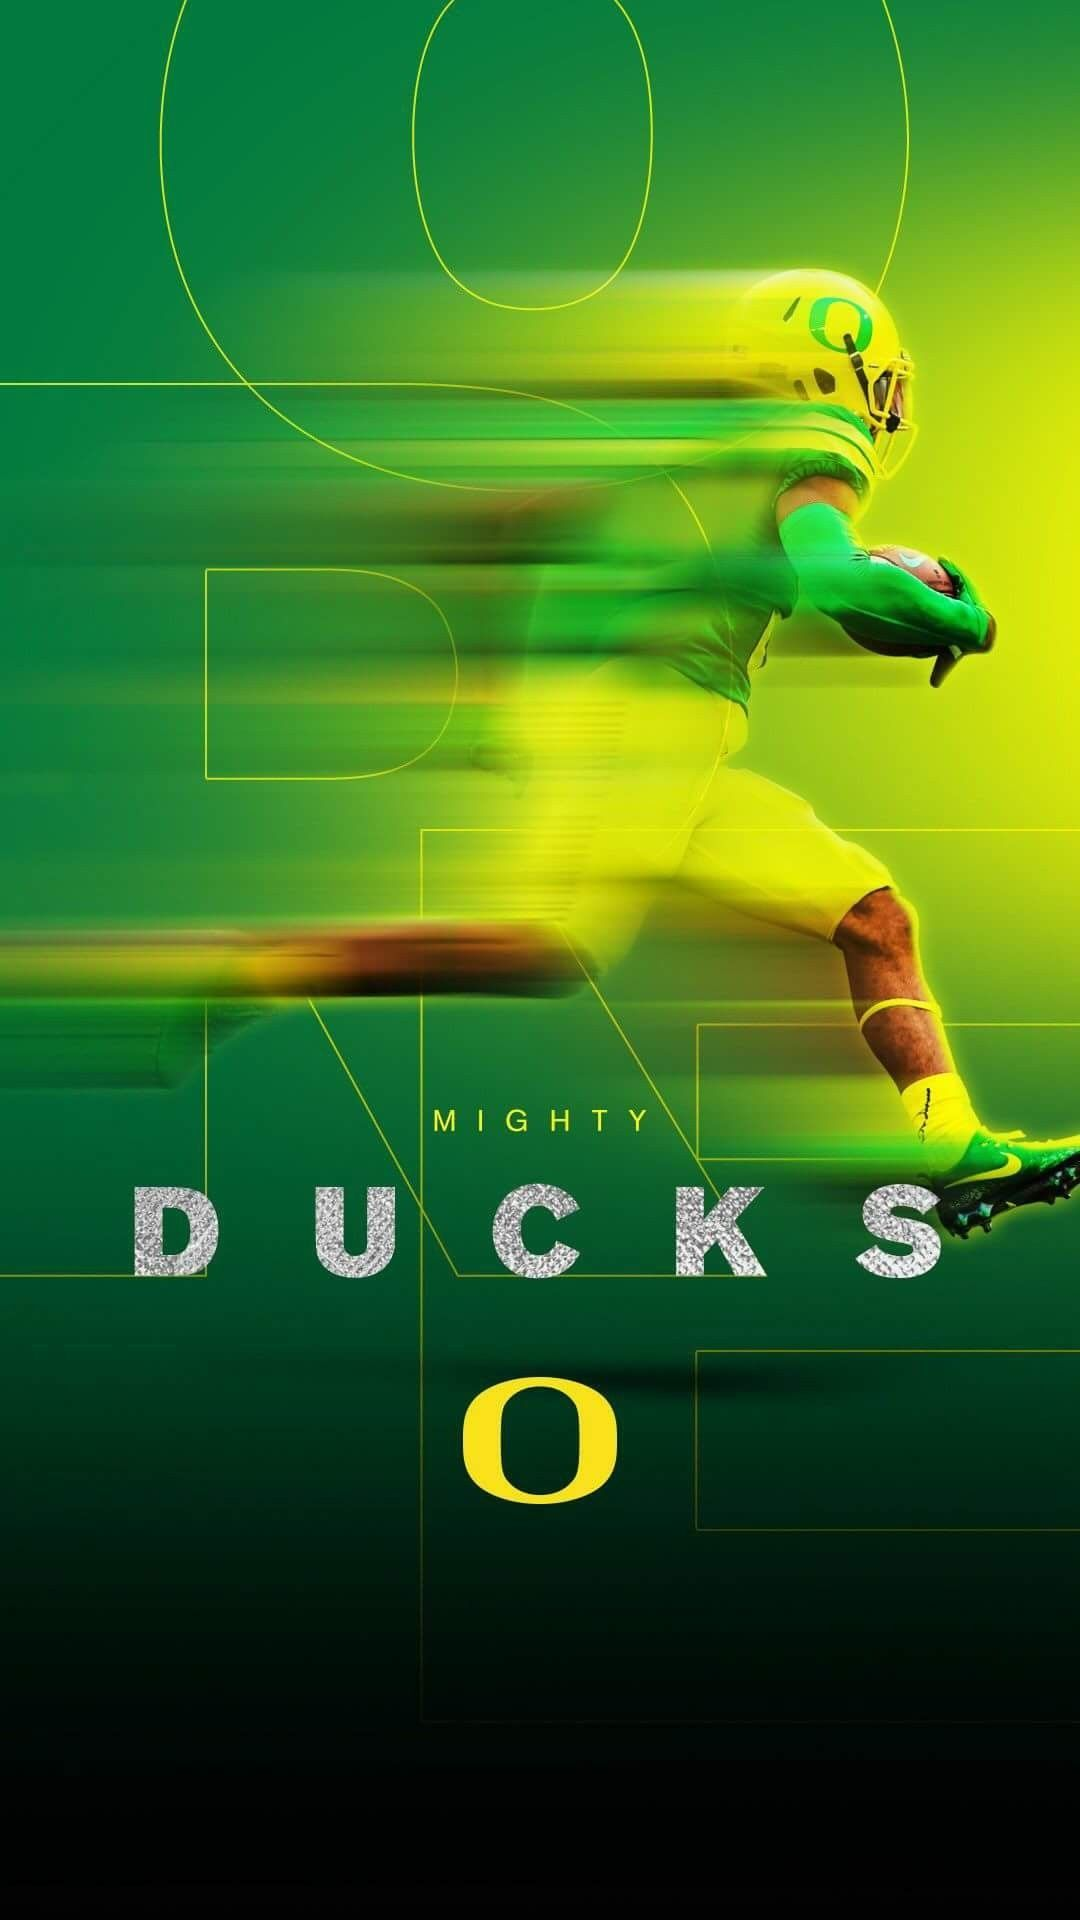 Oregon Football Wallpaper : oregon, football, wallpaper, Oregon, Ducks, Ducks,, Football,, Football